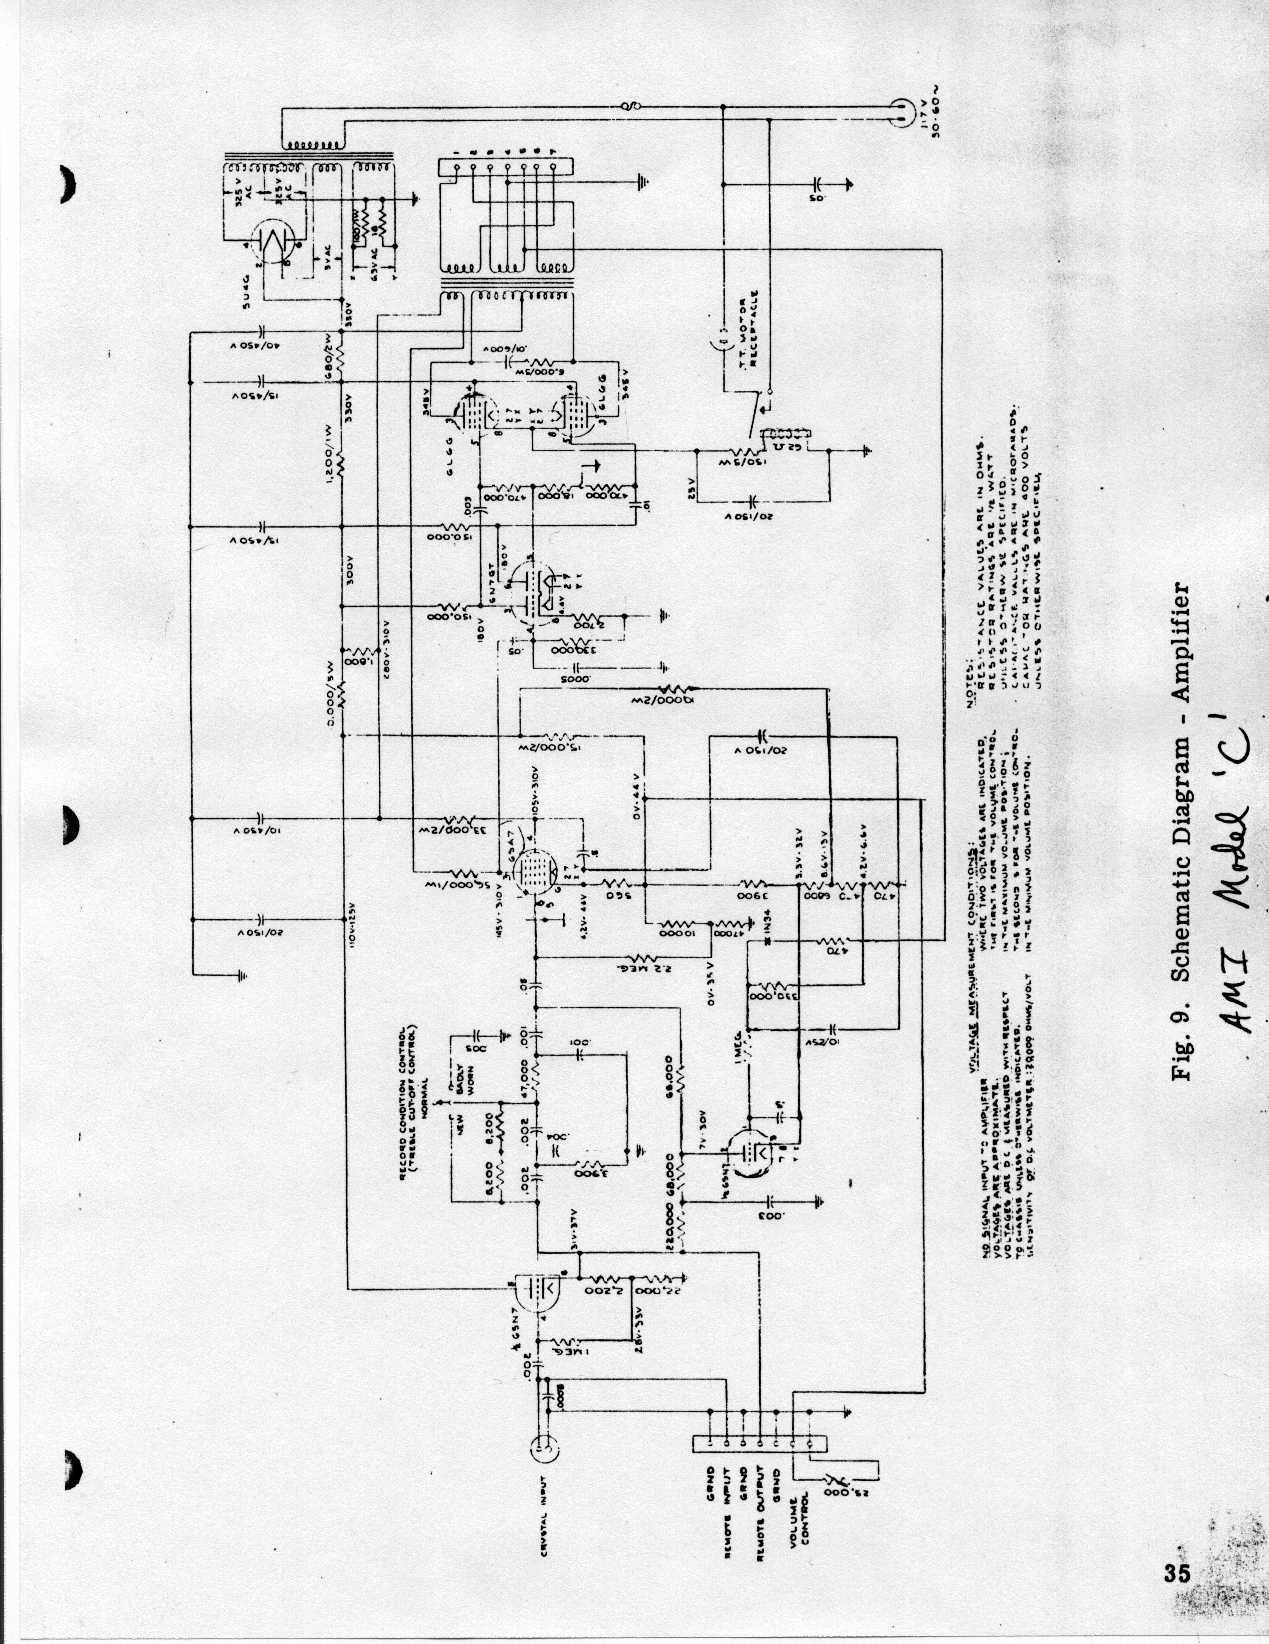 A Doorbell 30va Transformer Wiring Diagram